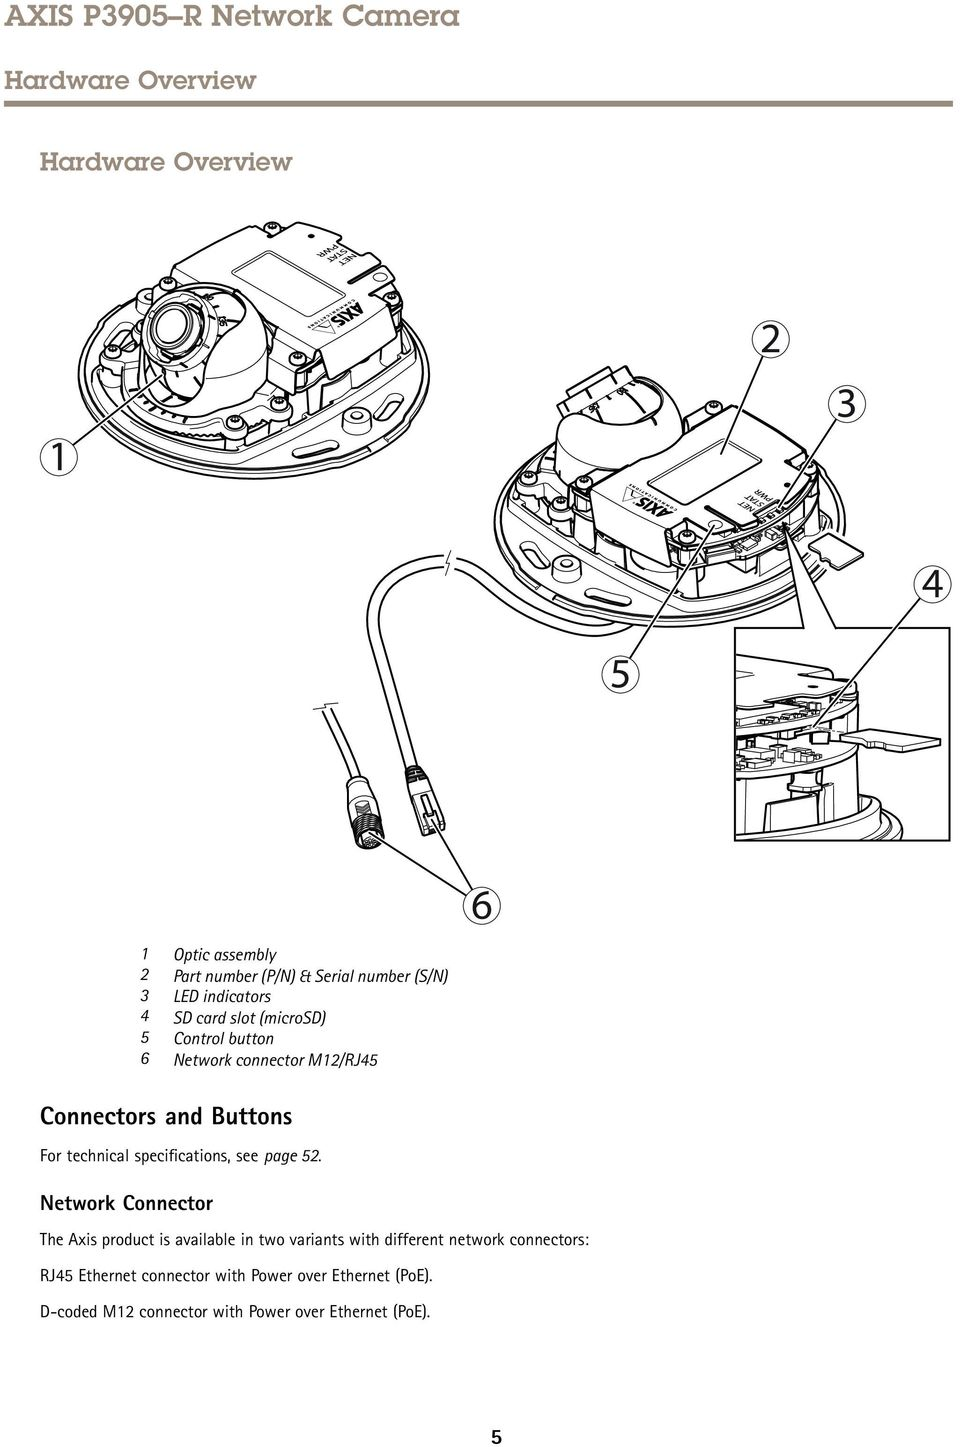 Connectors and Buttons For technical specifications, see page 52.